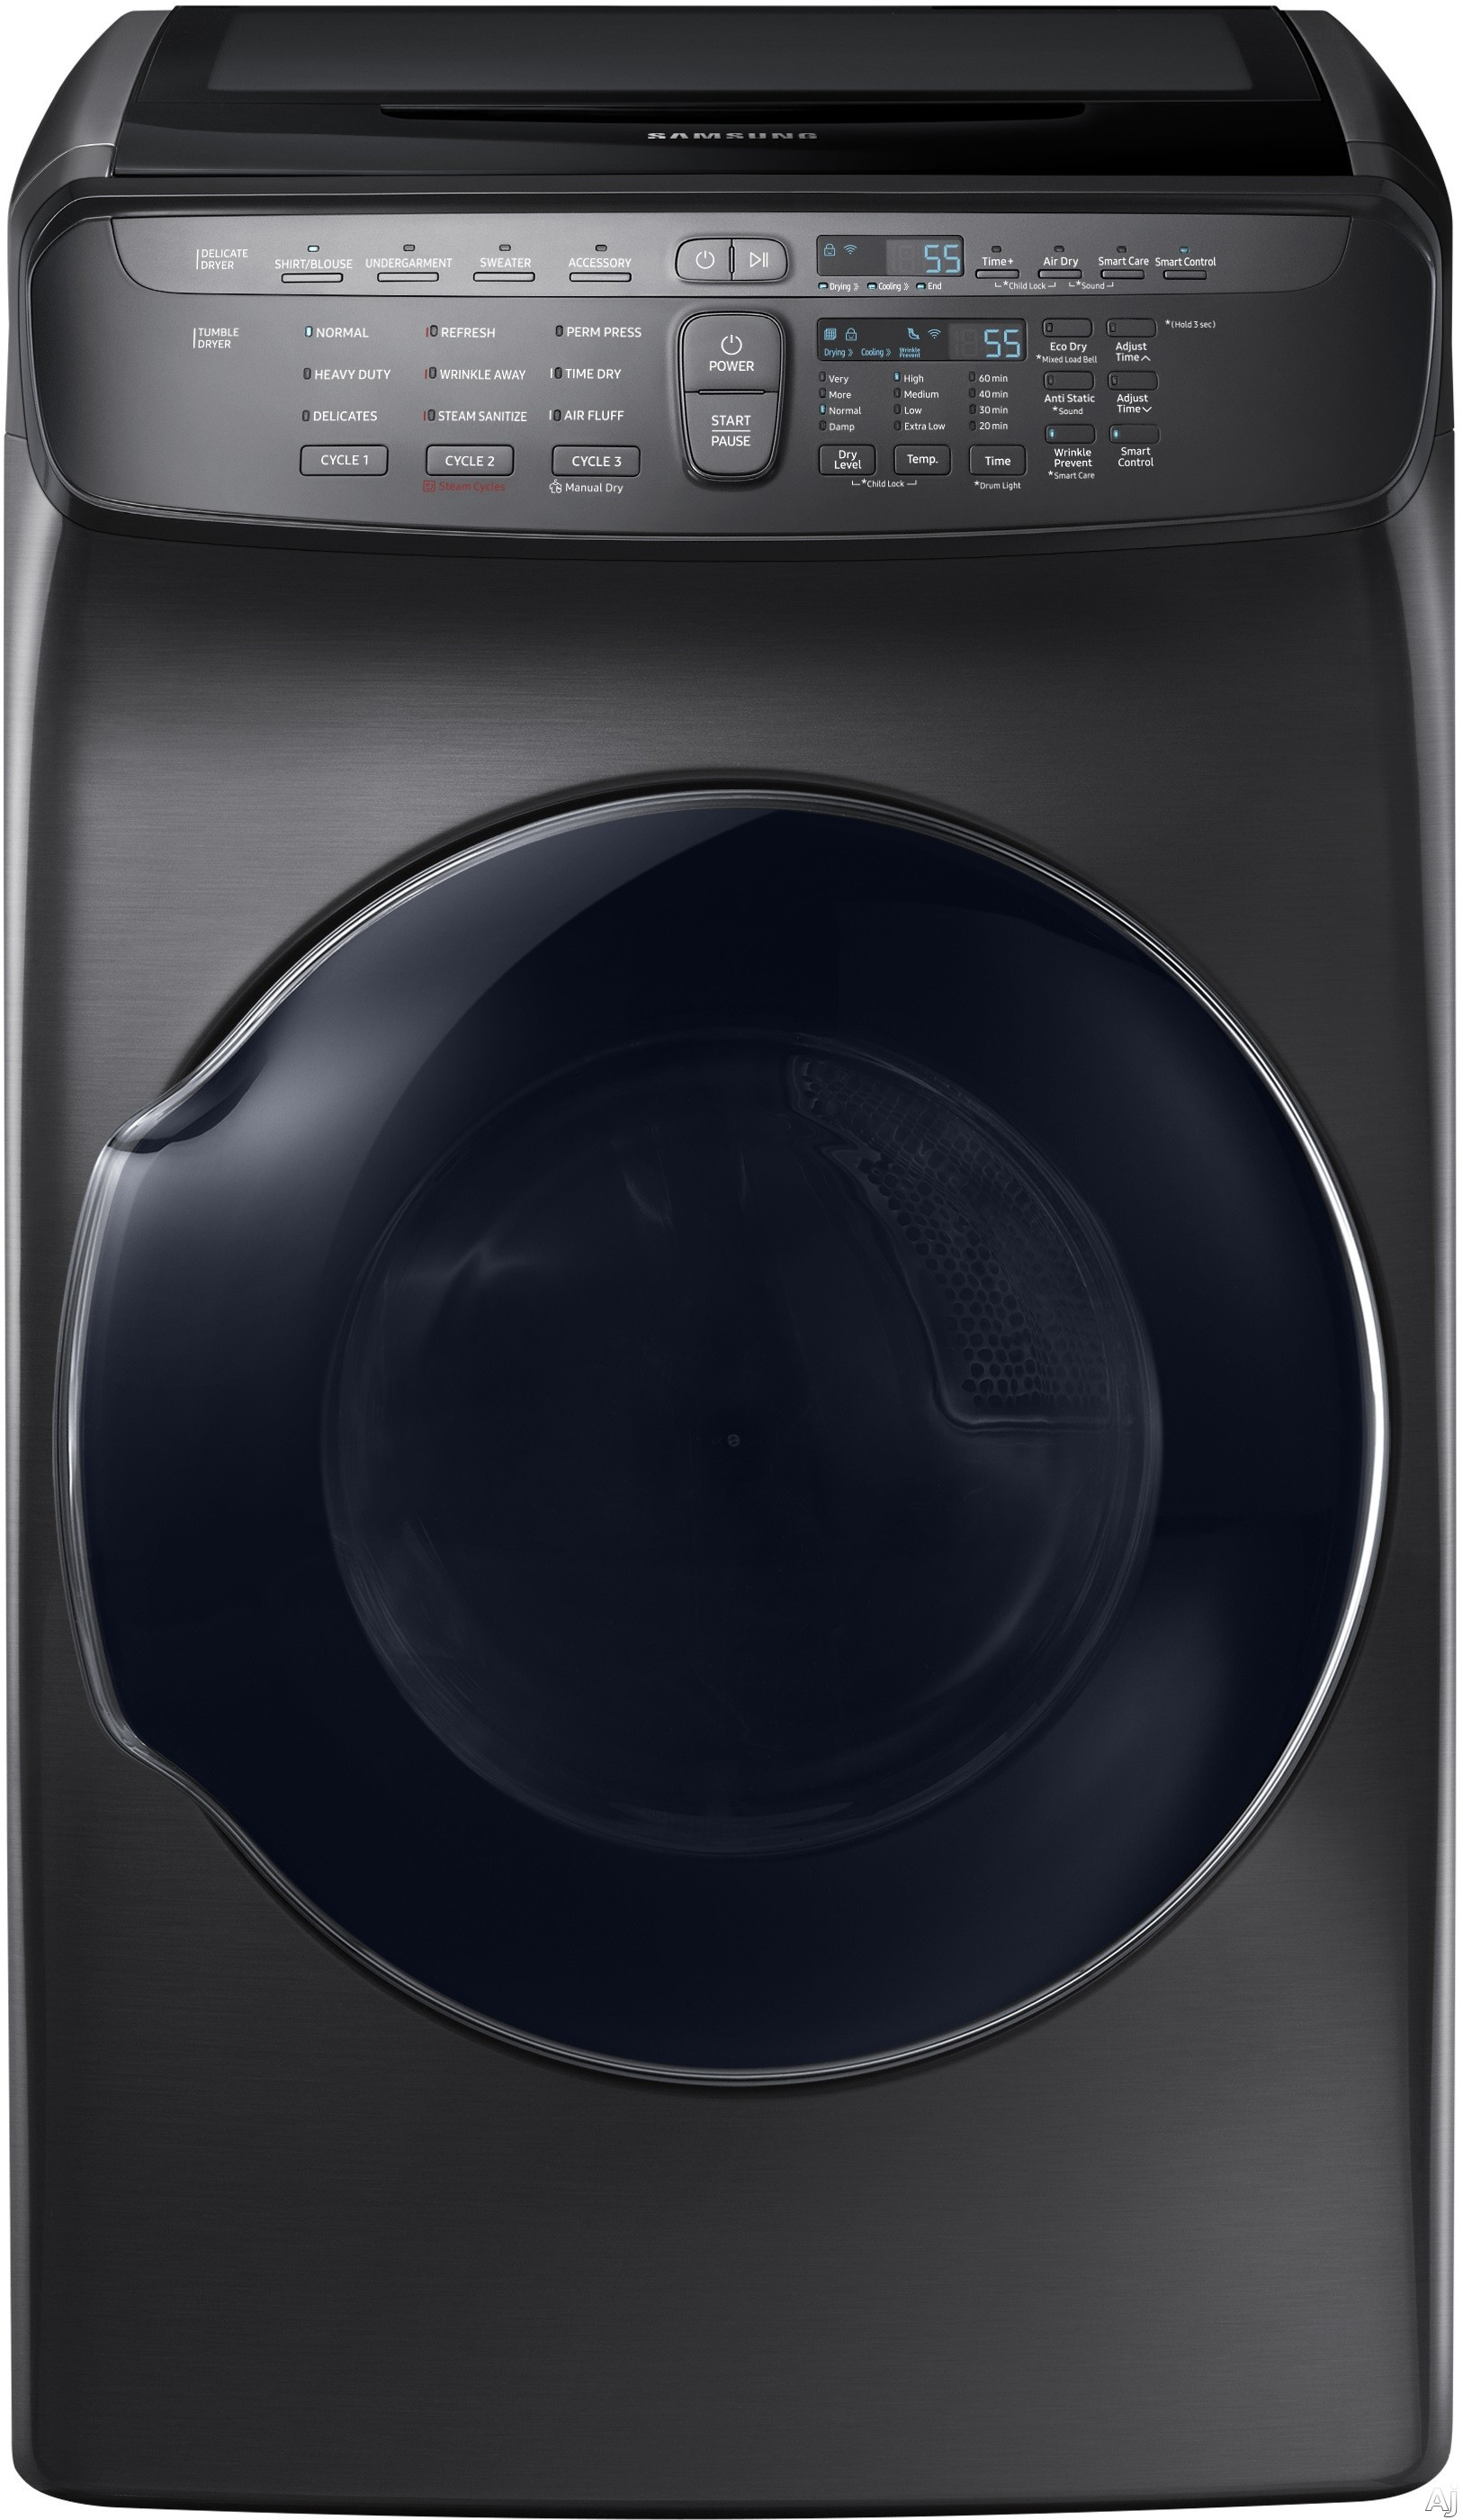 "Samsung FlexWash DVE55M9600X 27 Inch FlexDryâ""¢ Electric Dryer with Multi-Steamâ""¢, Sensor Dry, Wi-Fi Connectivity, 13 Dry Cycles, Wrinkle Release, Anti-Static Option, Smart Care, Eco Dry, Vent Sensor and 7.5 cu. ft. Capacity"